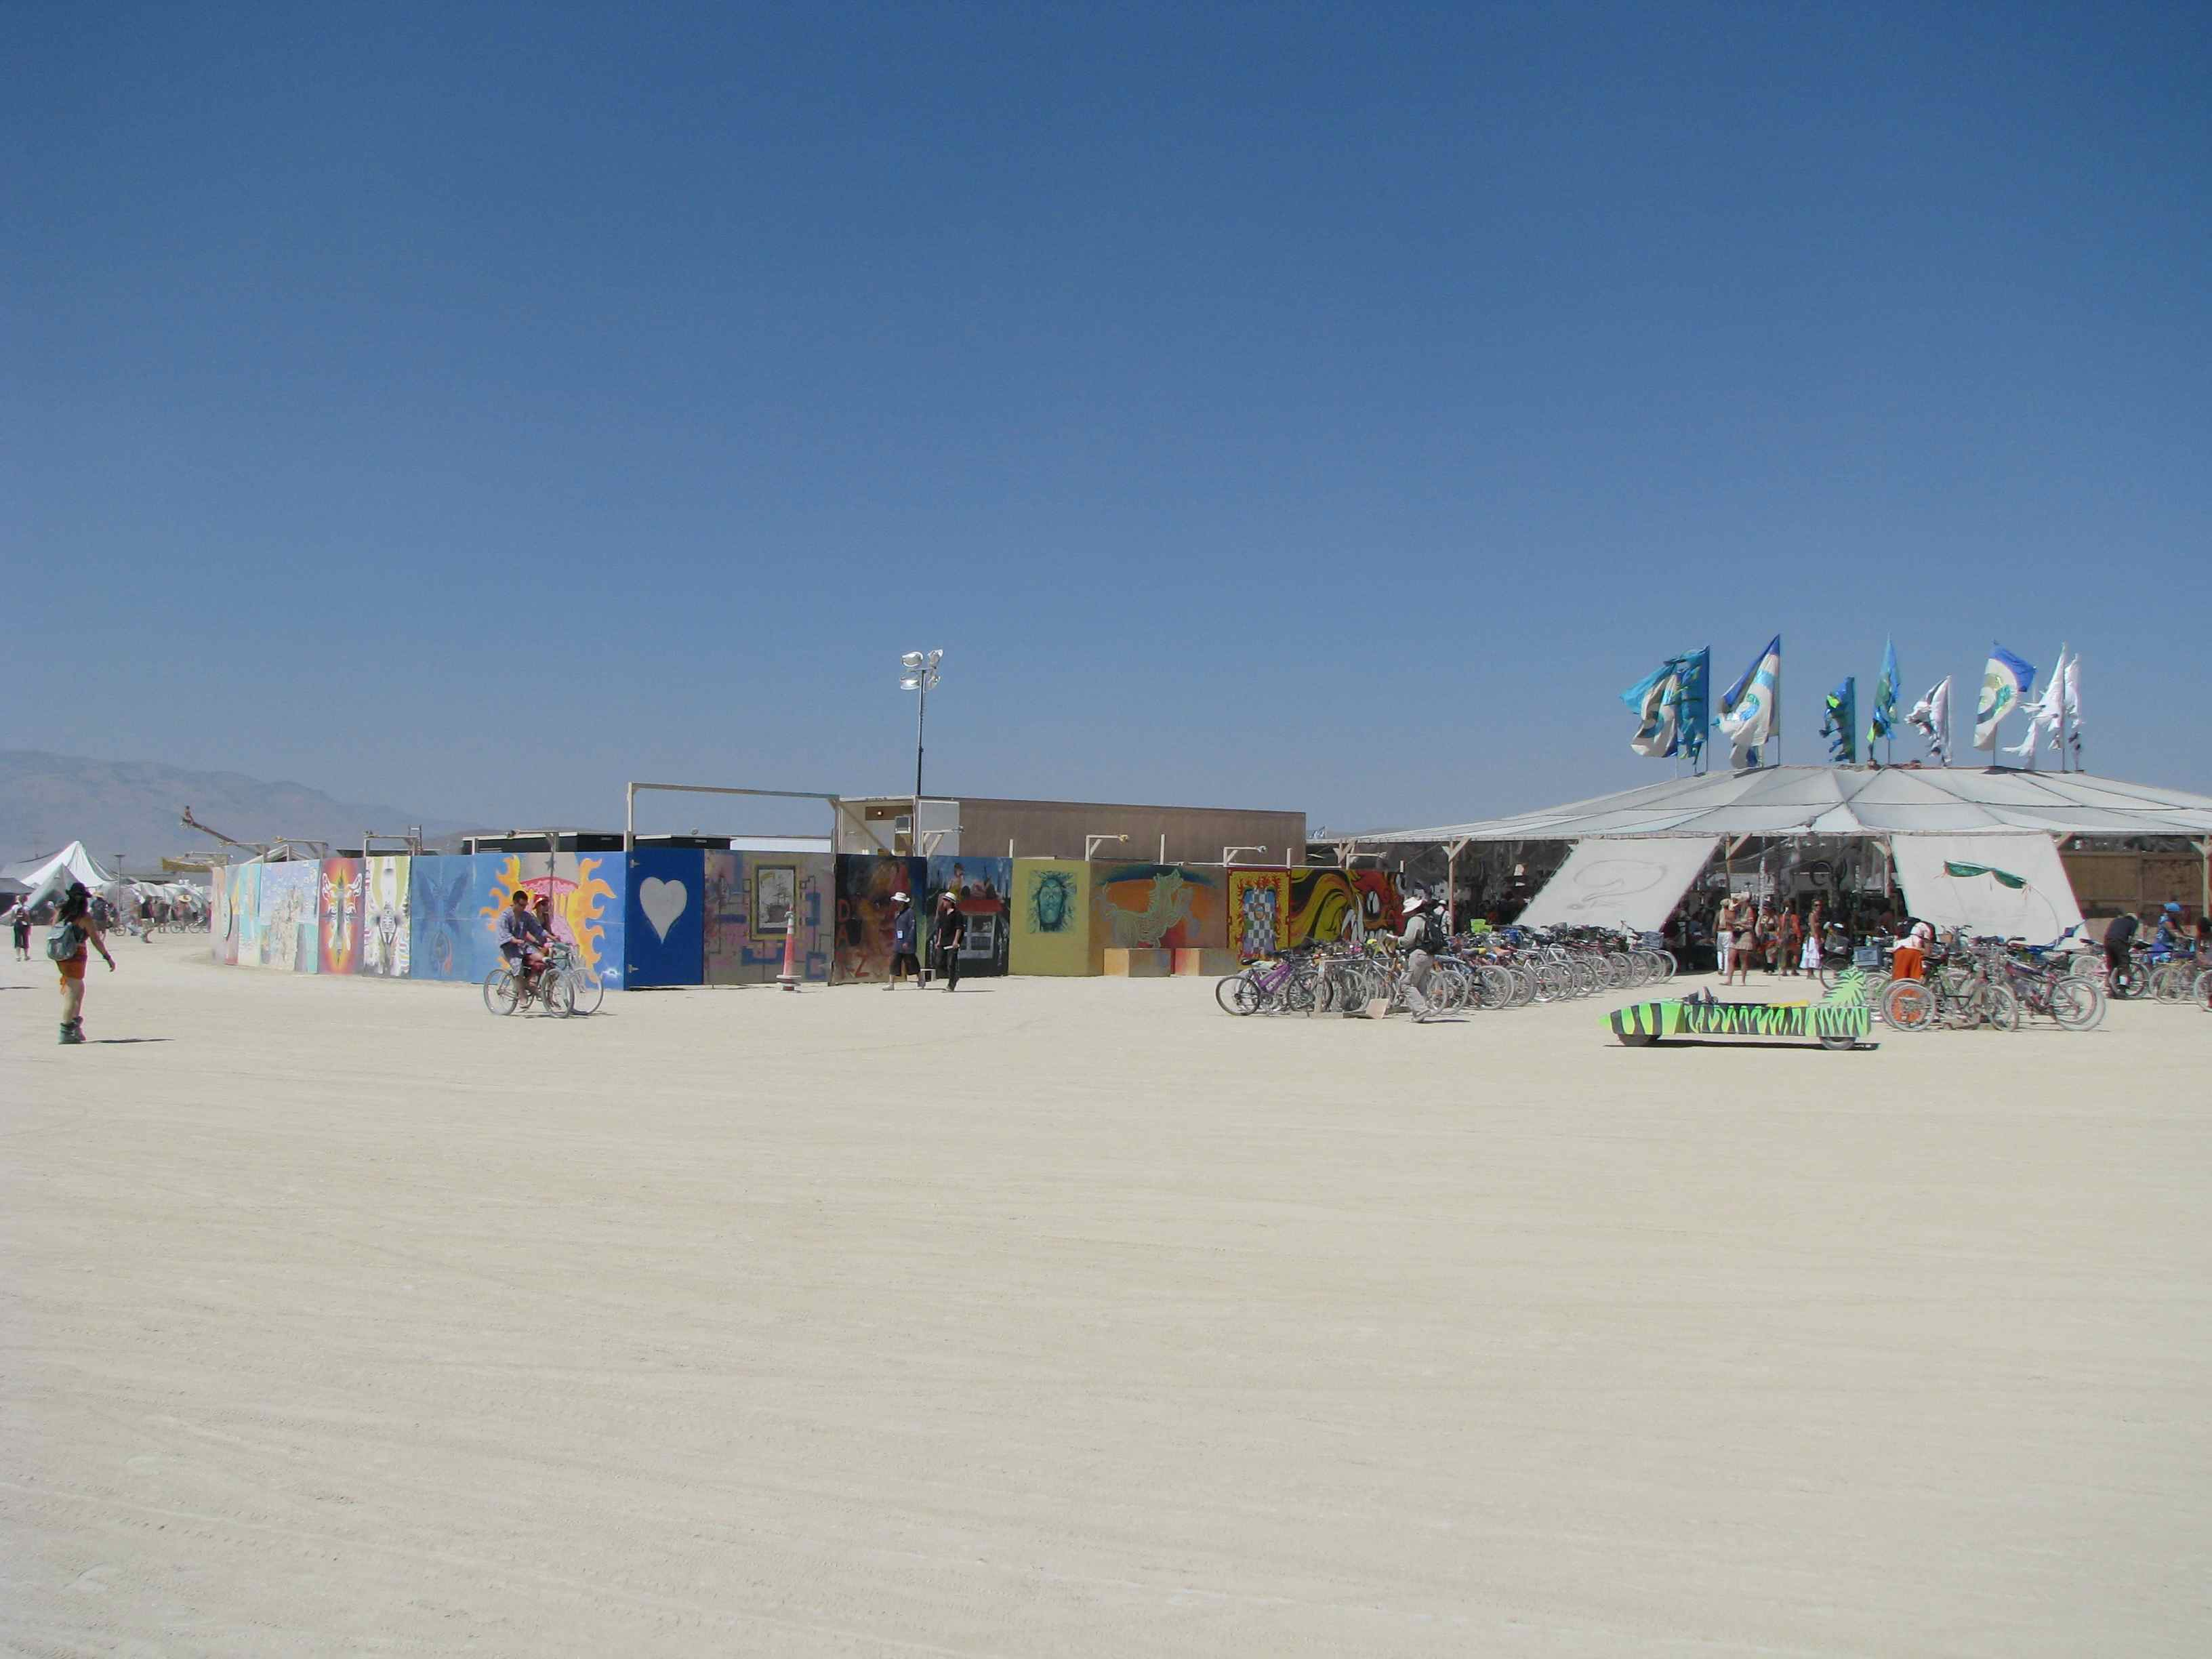 The outside of Center Camp-Burning Man 2011